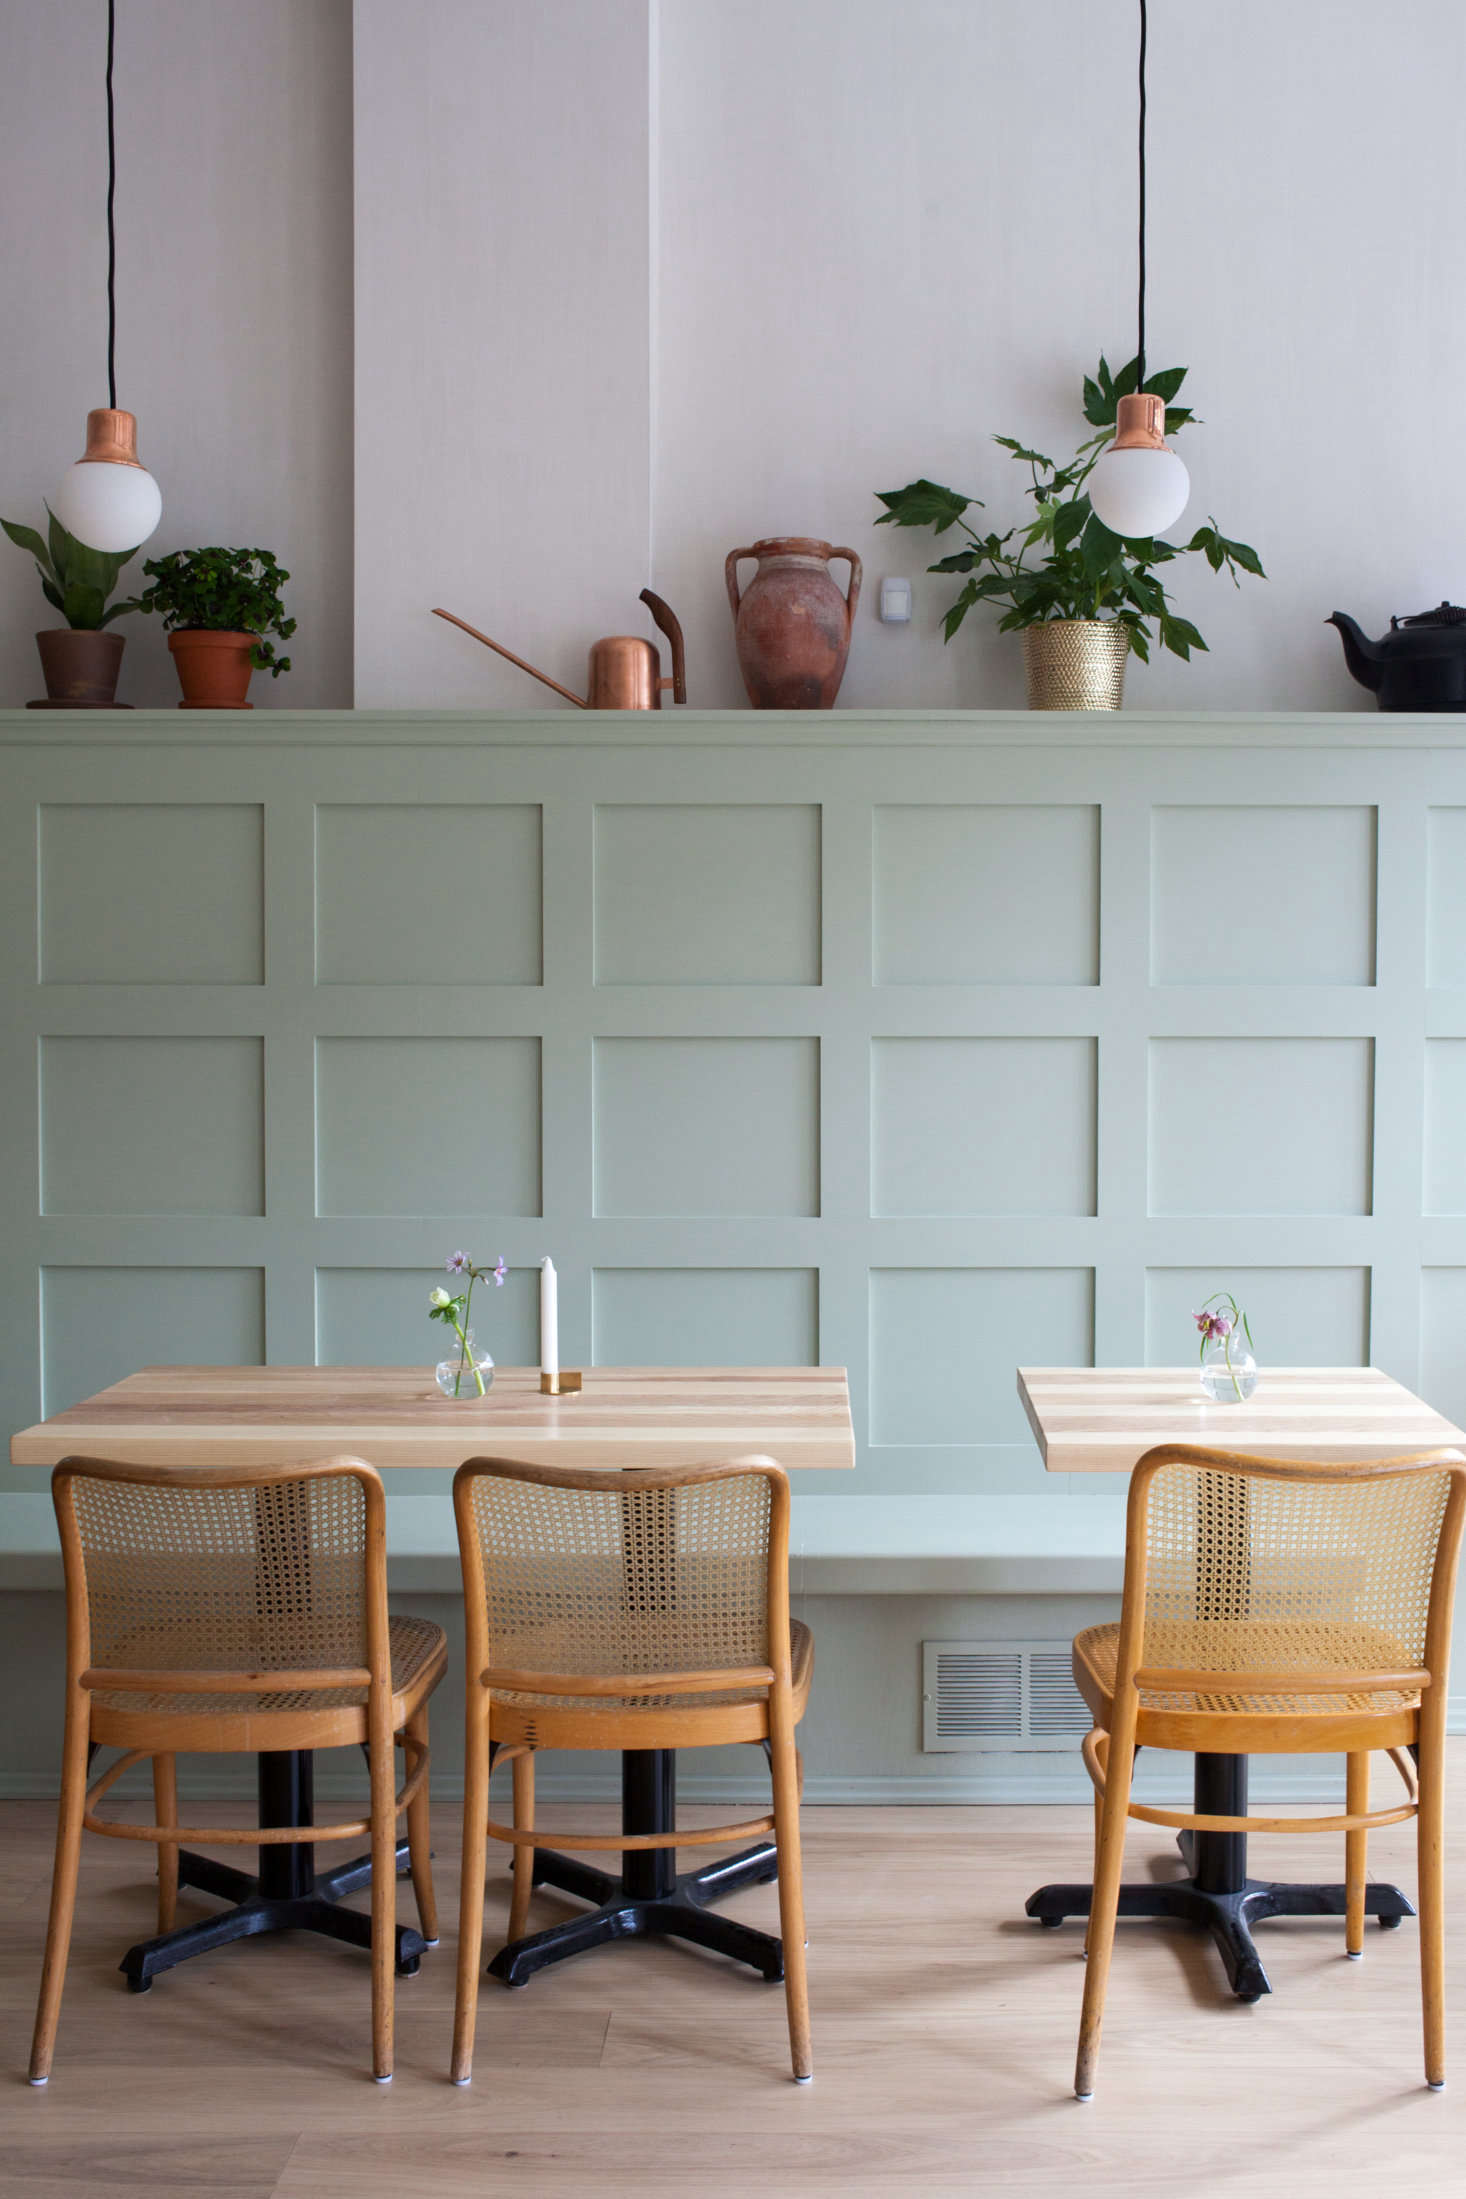 A Banquette In Pale Green (by Way Of Farrow U0026 Ball Paint) Is Paired